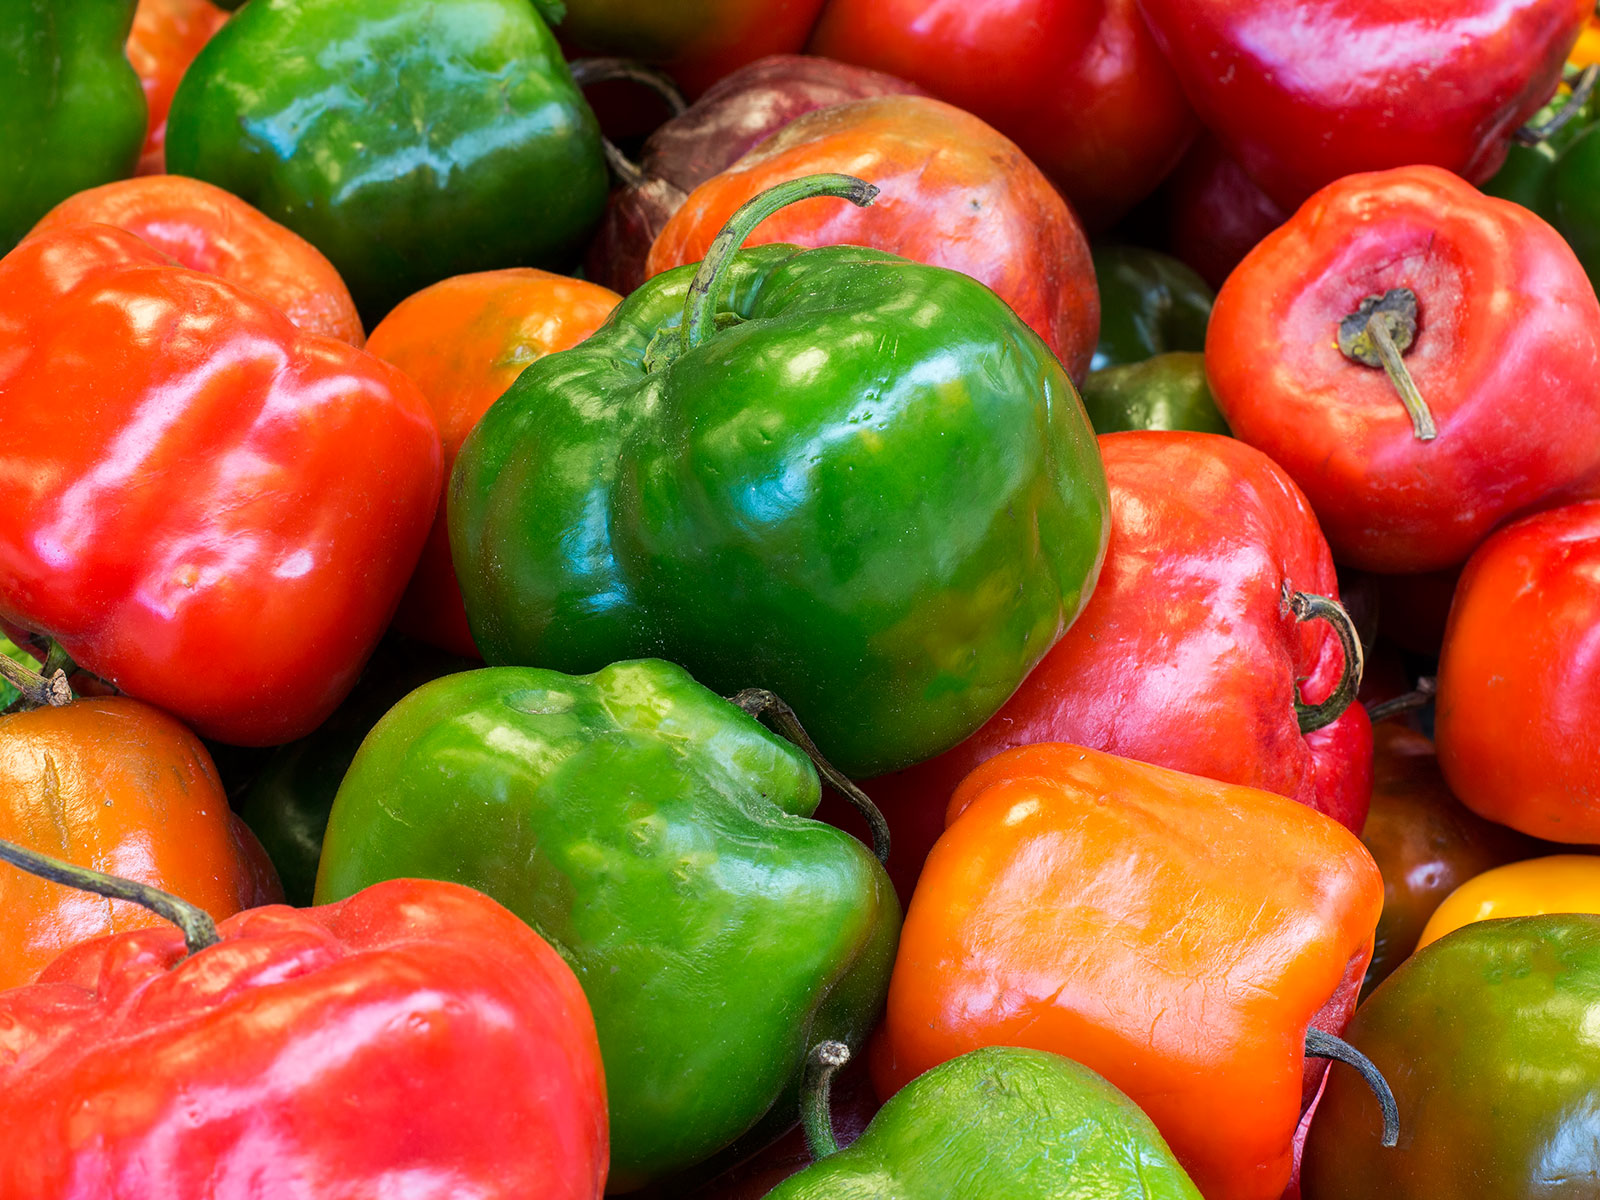 Pepper X Claims To Be The New 39 World 39 S Hottest Chili